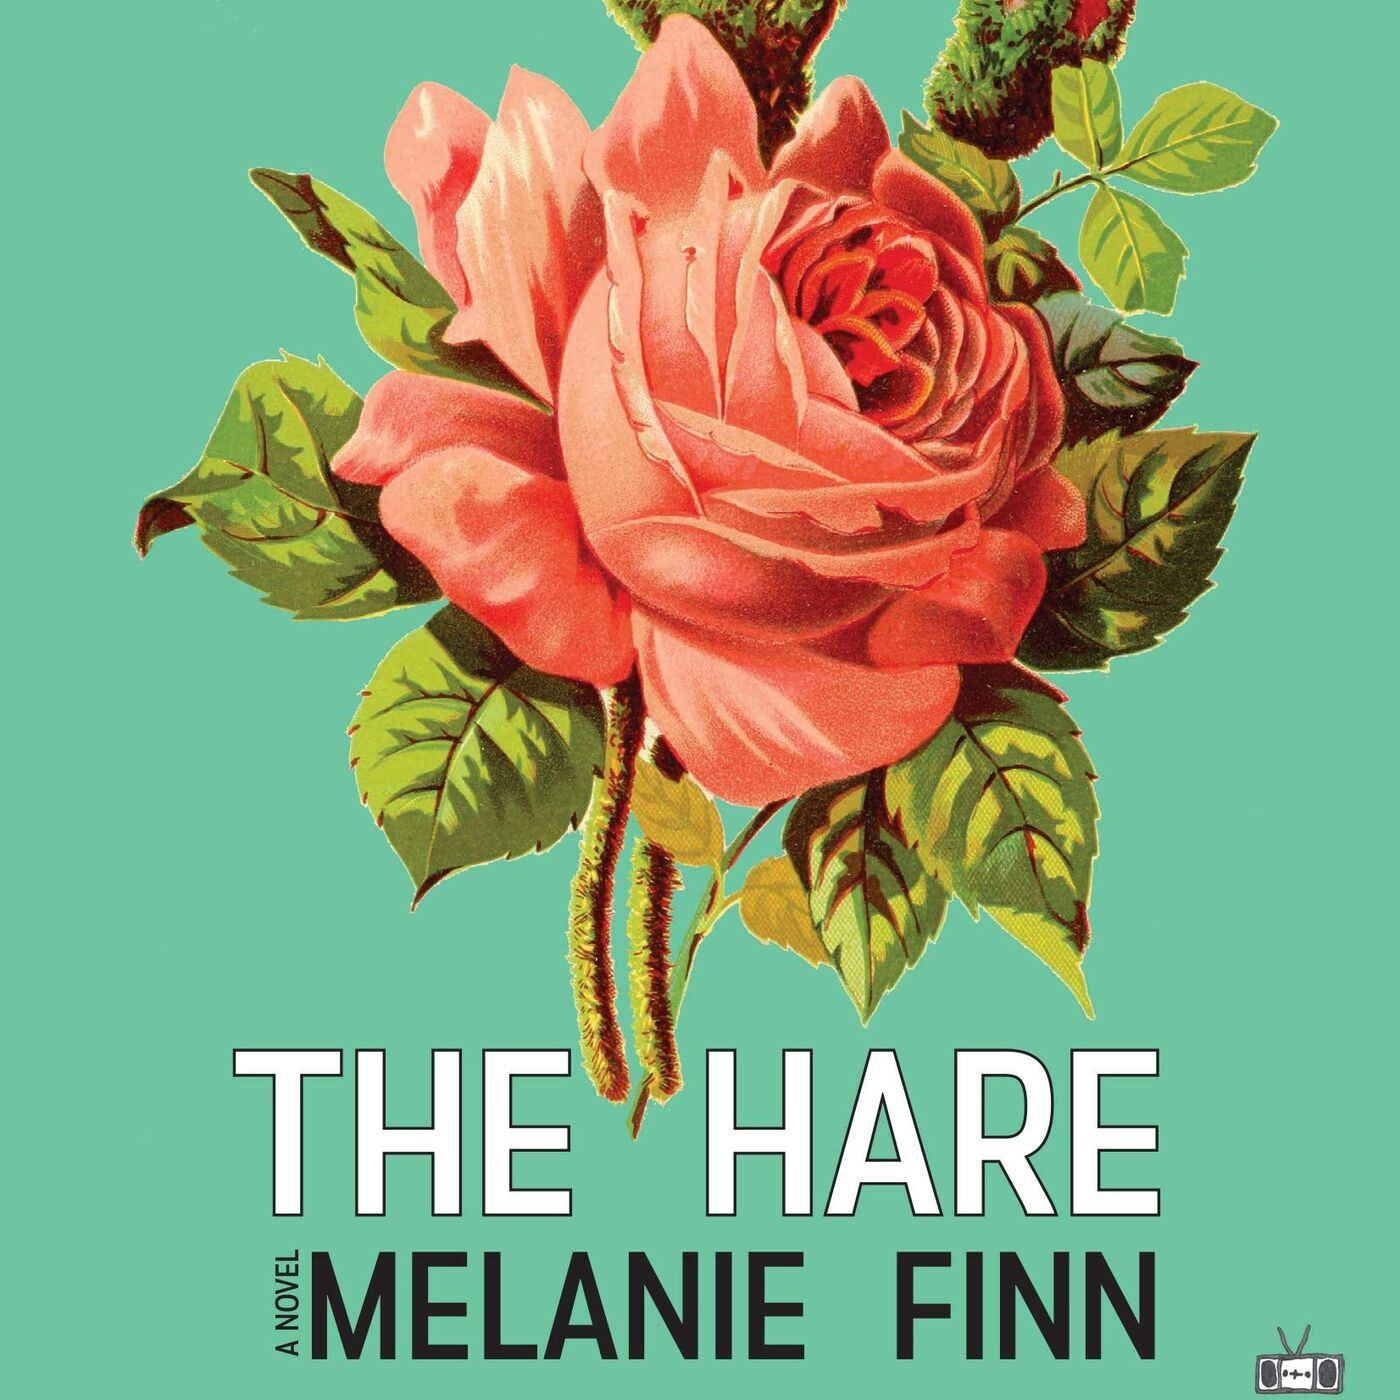 Melanie Finn on the allure of bad characters